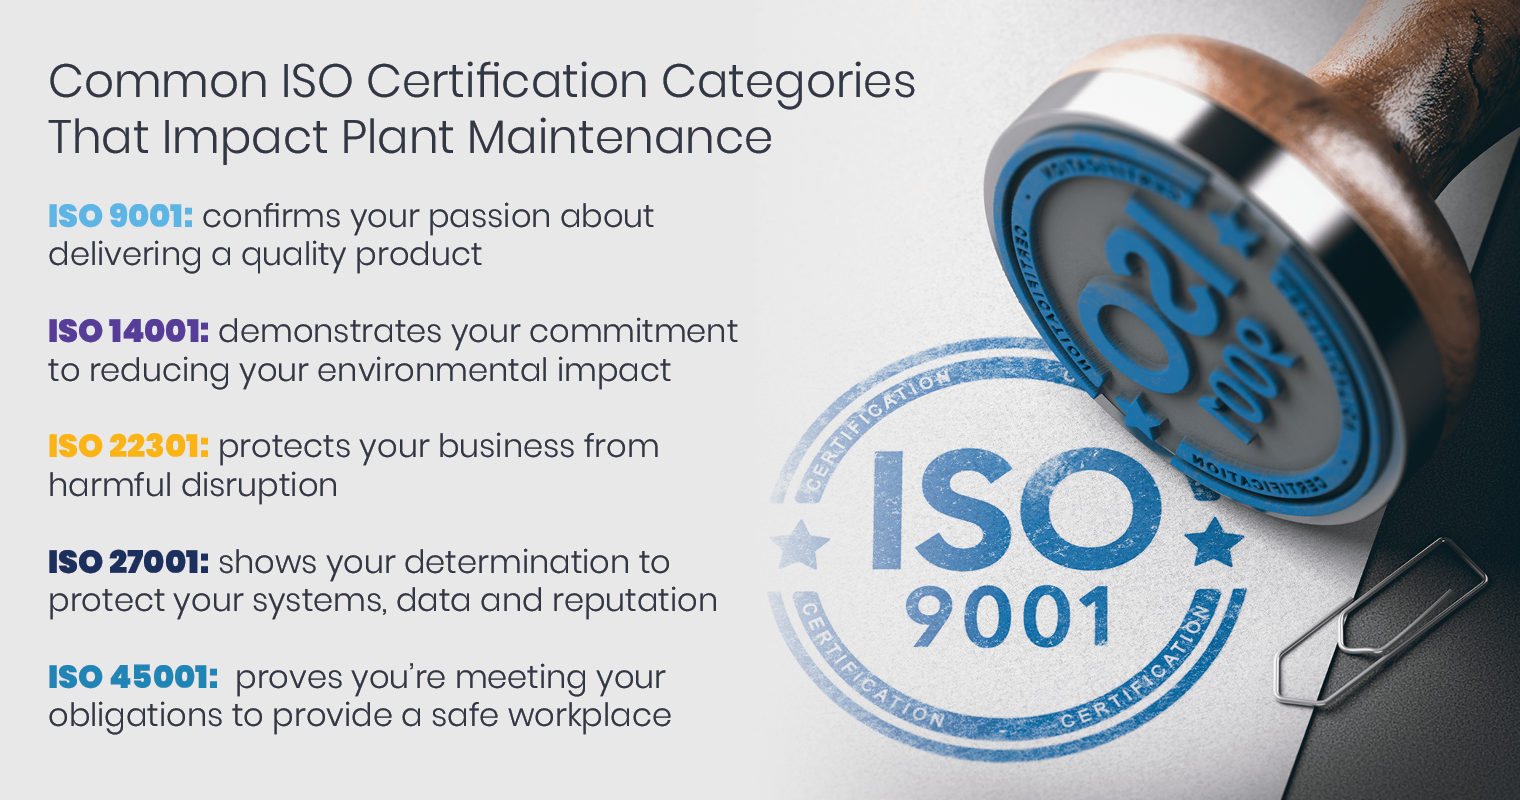 using-digital-work-instructions-to-boost-your-plants-iso-certification-efforts-graphic